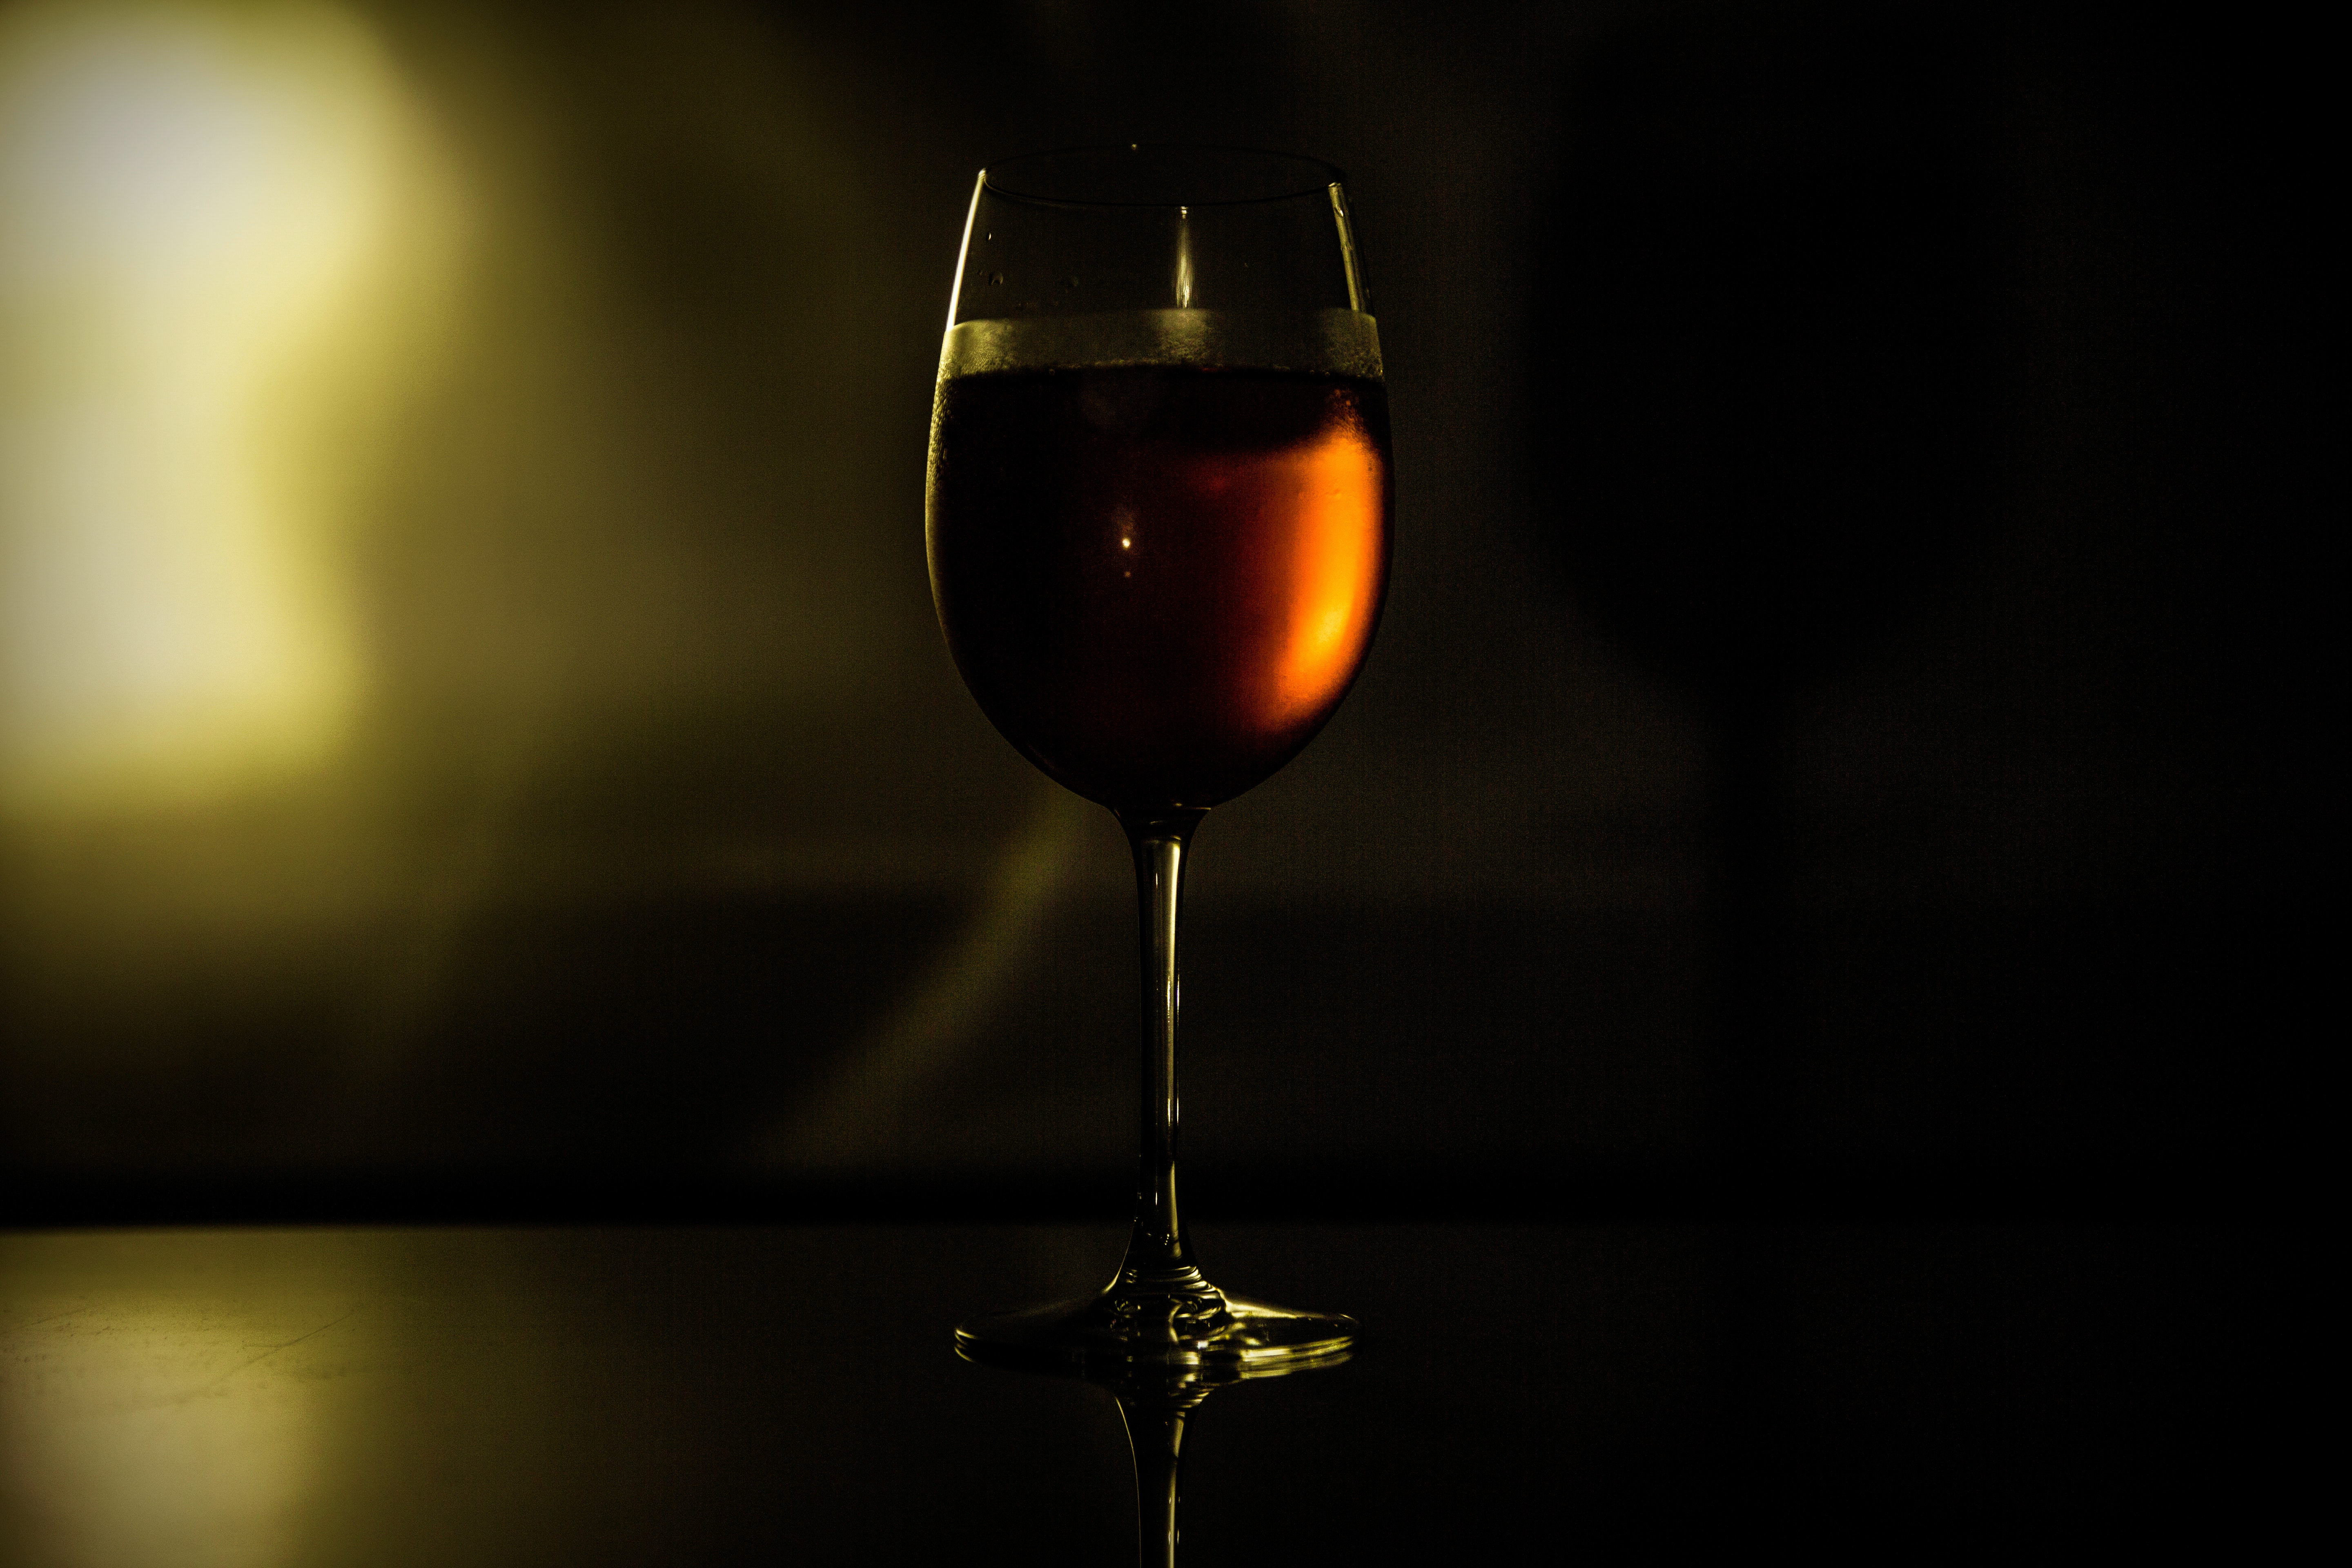 Free stock photo of alcohol alcoholic drink for Immagini design